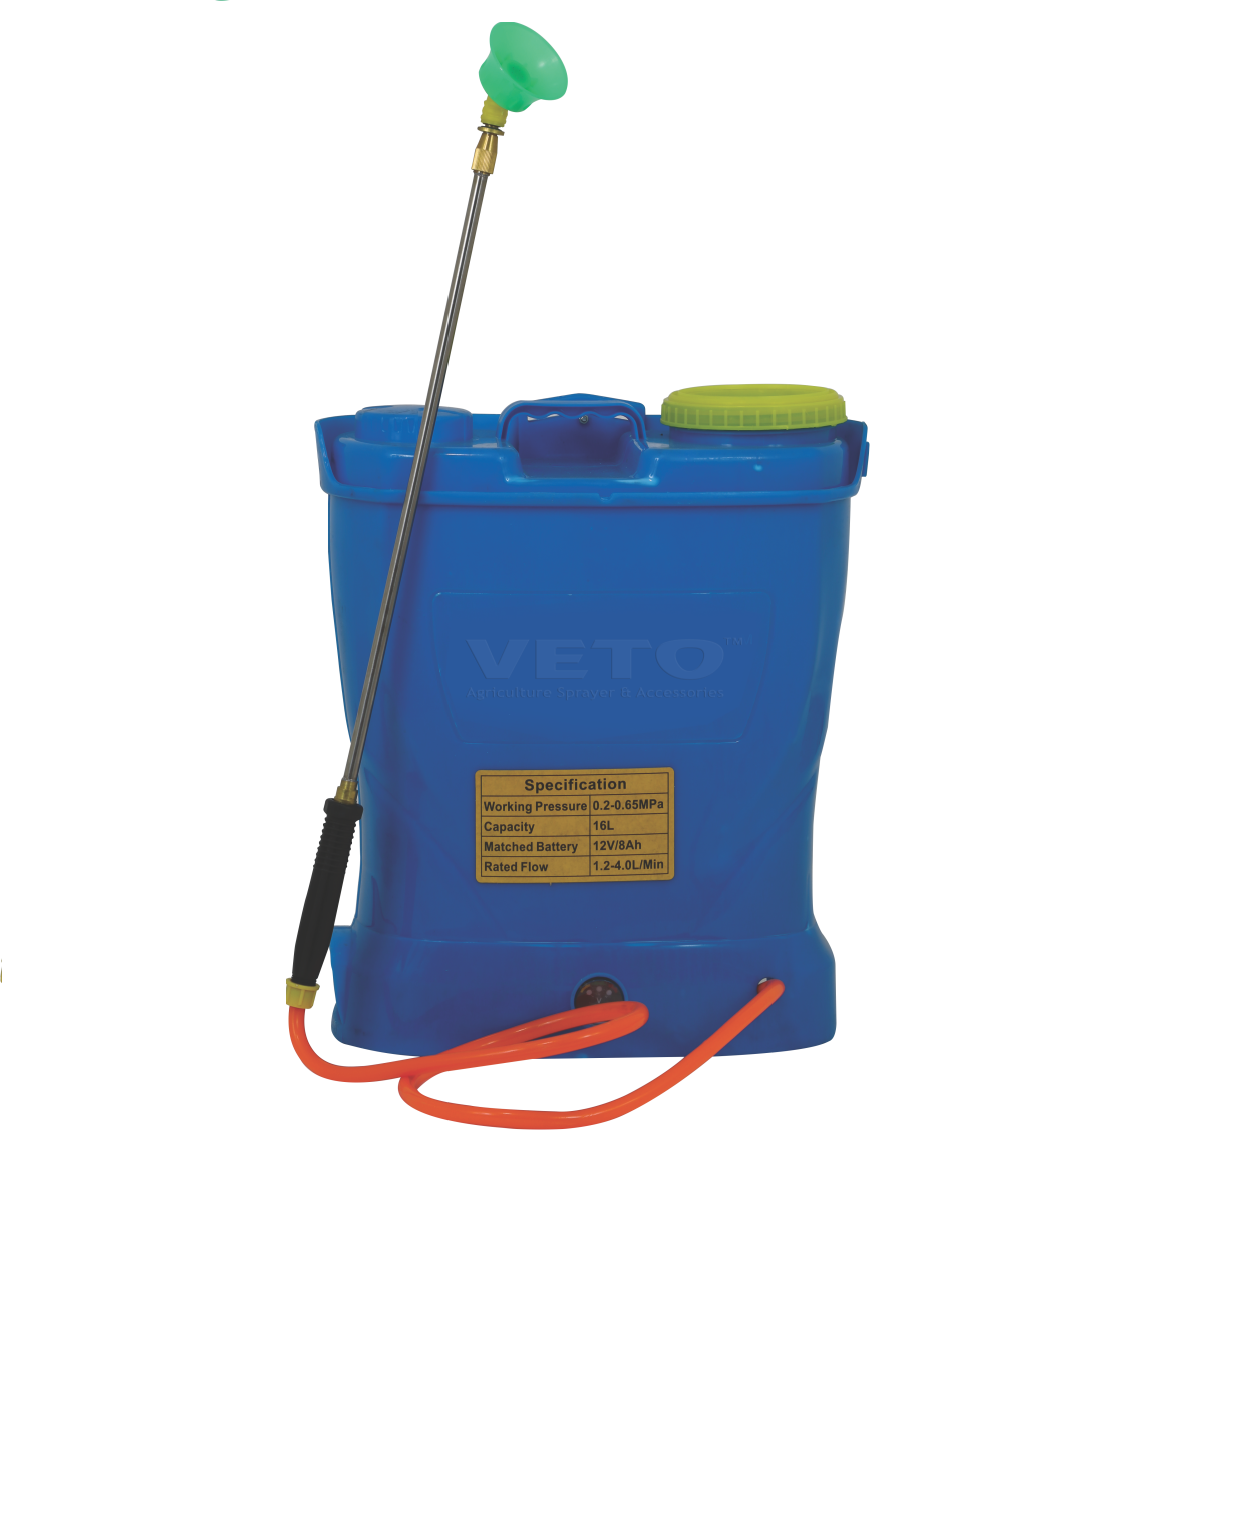 Knapsack Battery Sprayer